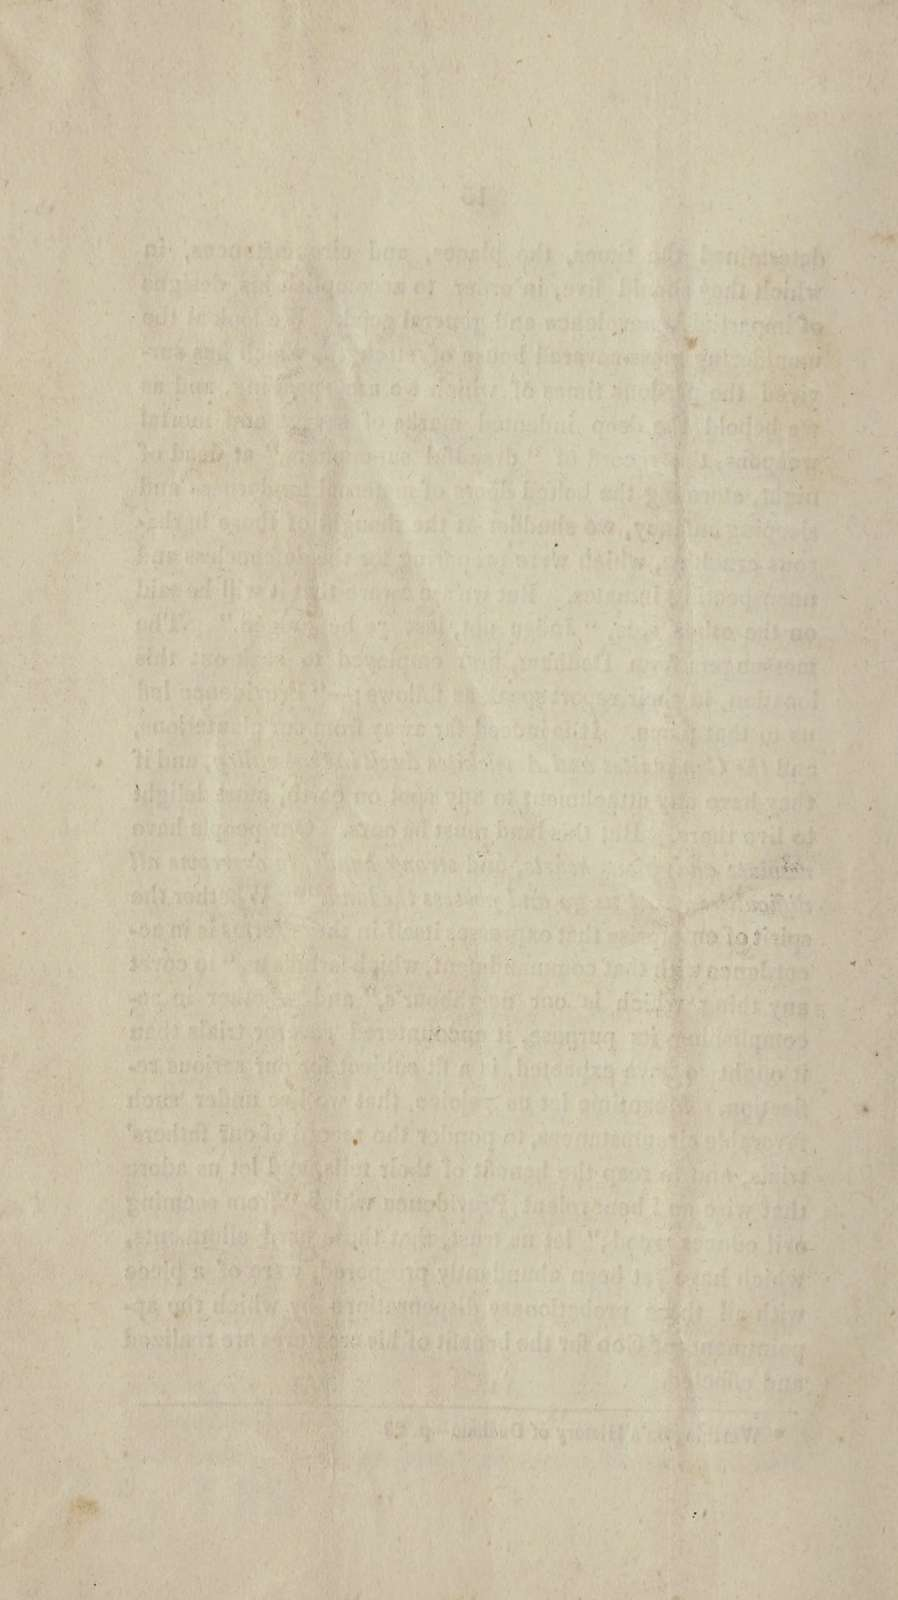 A sermon preached to the First Congregational society in Deerfield, Mass., and in the hearing of several Indians of both sexes supposed to be descendants of Eunice Williams, daughter of Rev. John Williams, first minister of Deerfield, August 27, 1837